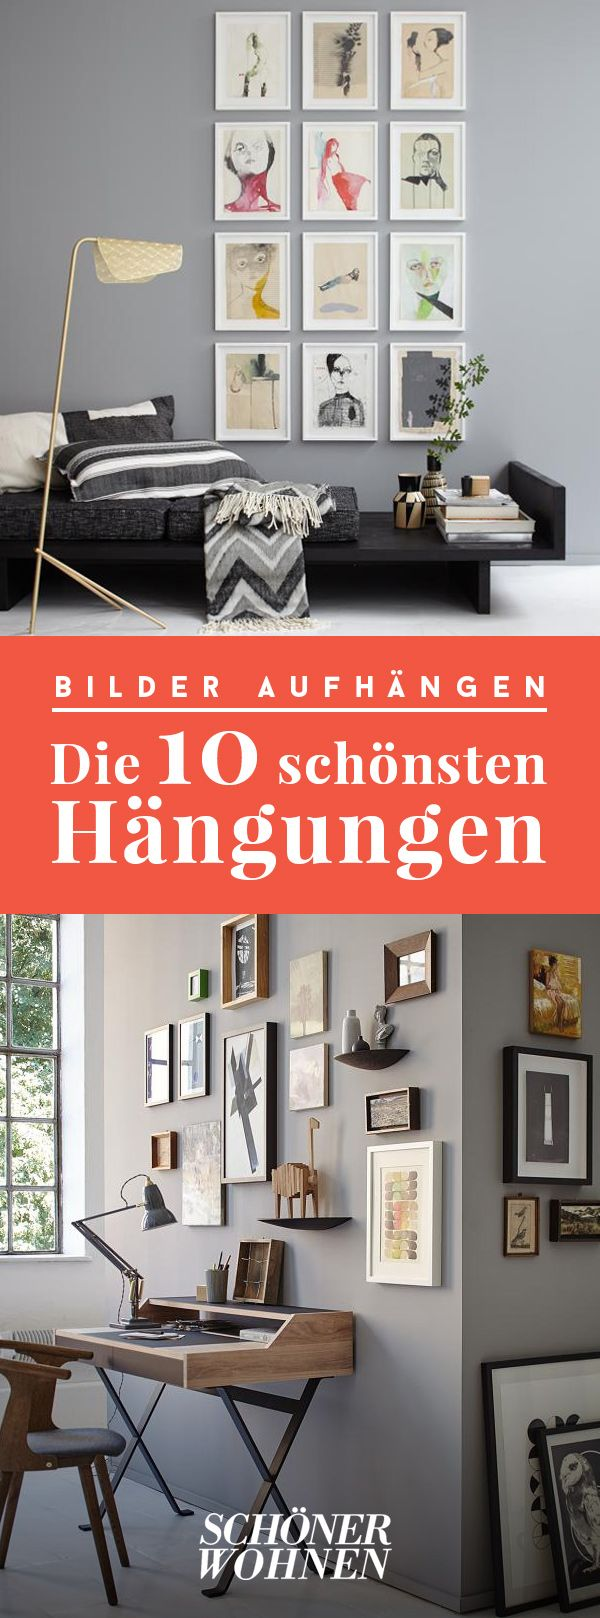 die besten 25 rahmen ideen auf pinterest. Black Bedroom Furniture Sets. Home Design Ideas